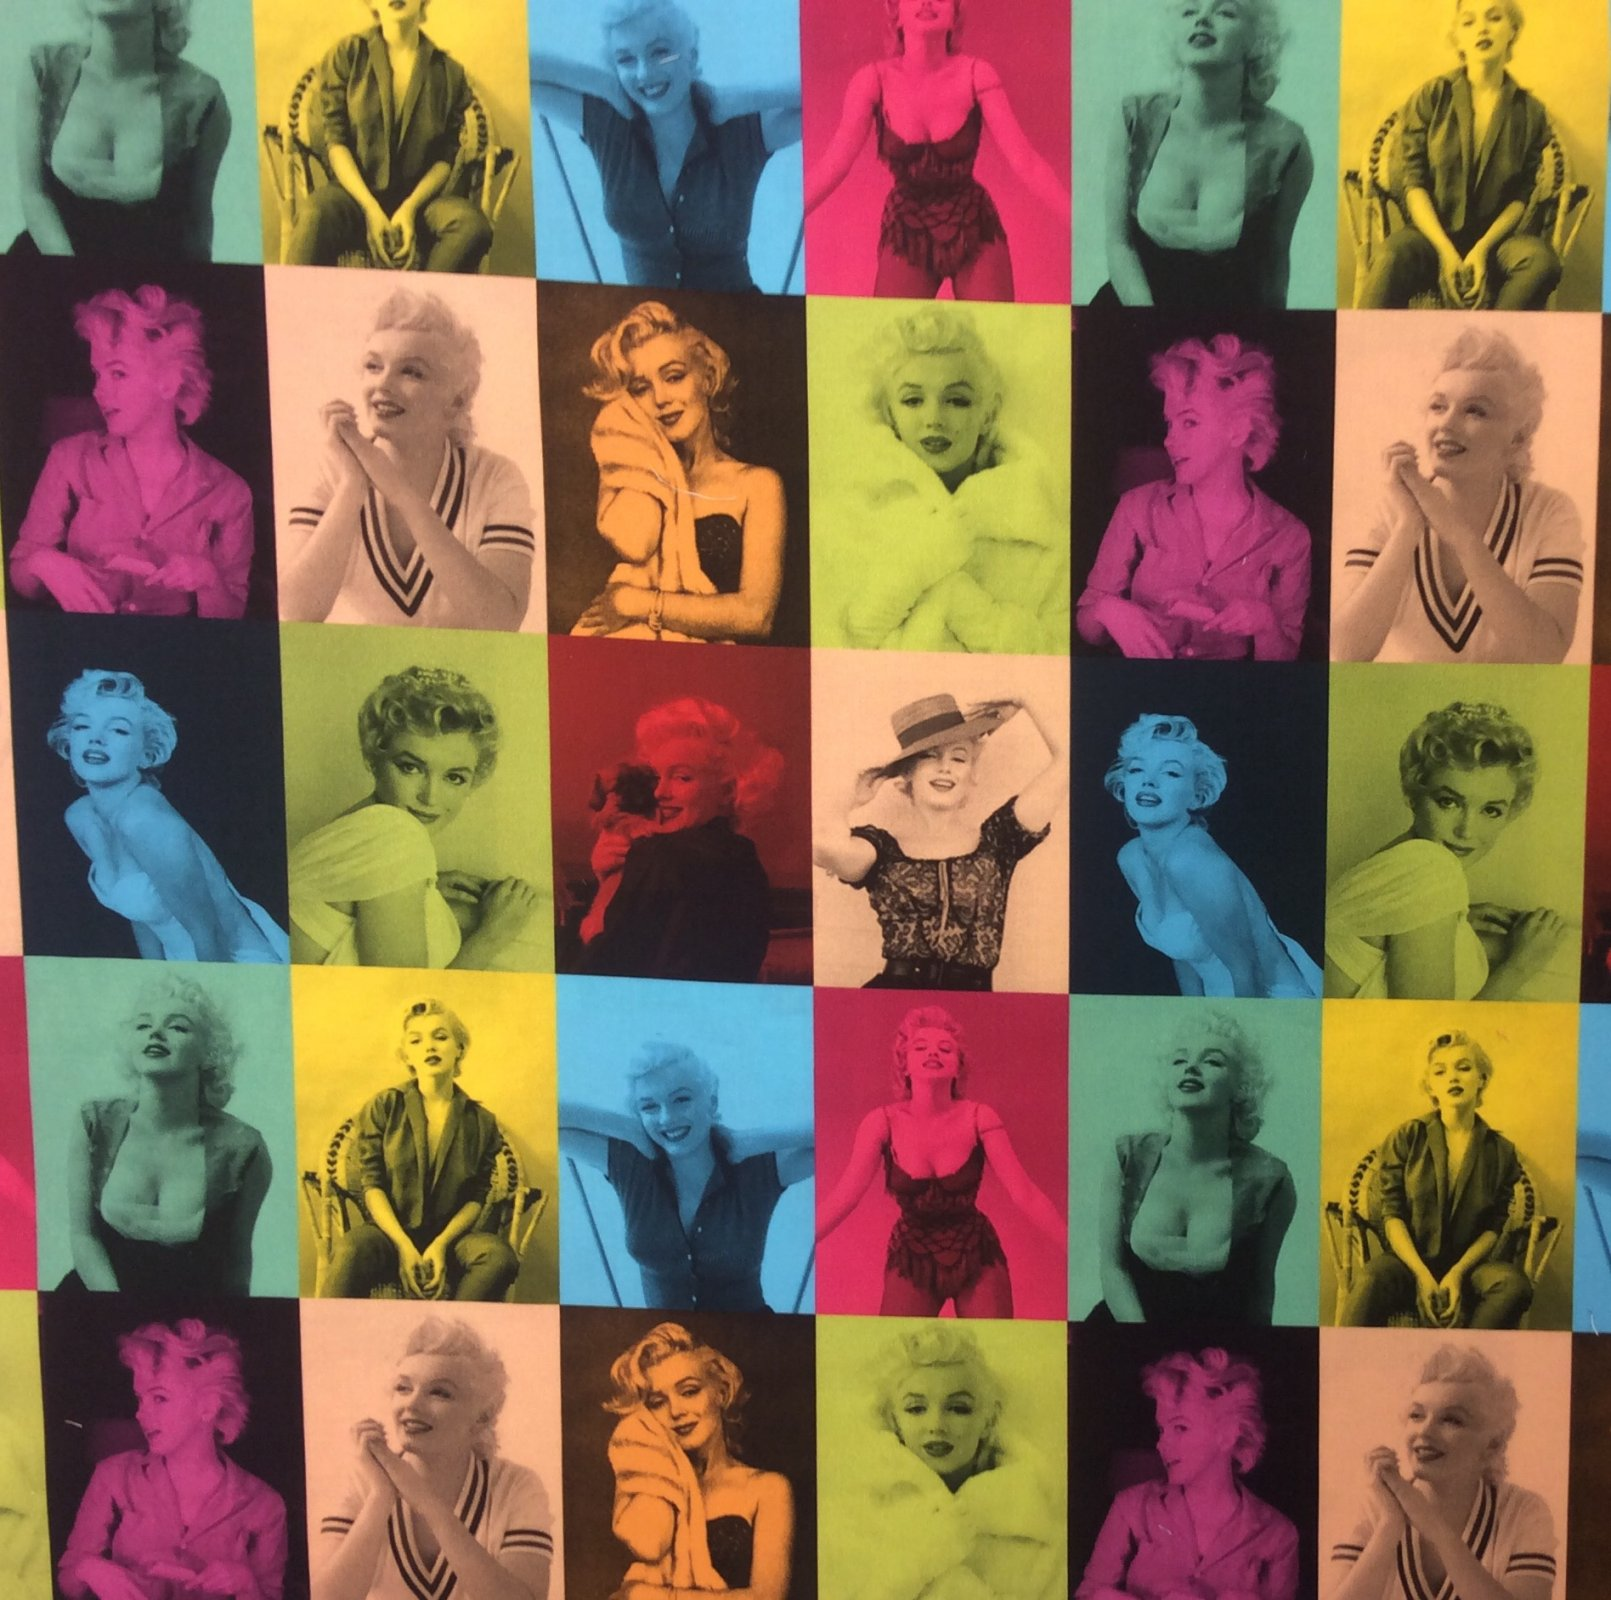 Marilyn Monroe Glamorous Sexy Starlet Movie Star Color Block Publicity Photos Cotton Quilt Fabric RK186